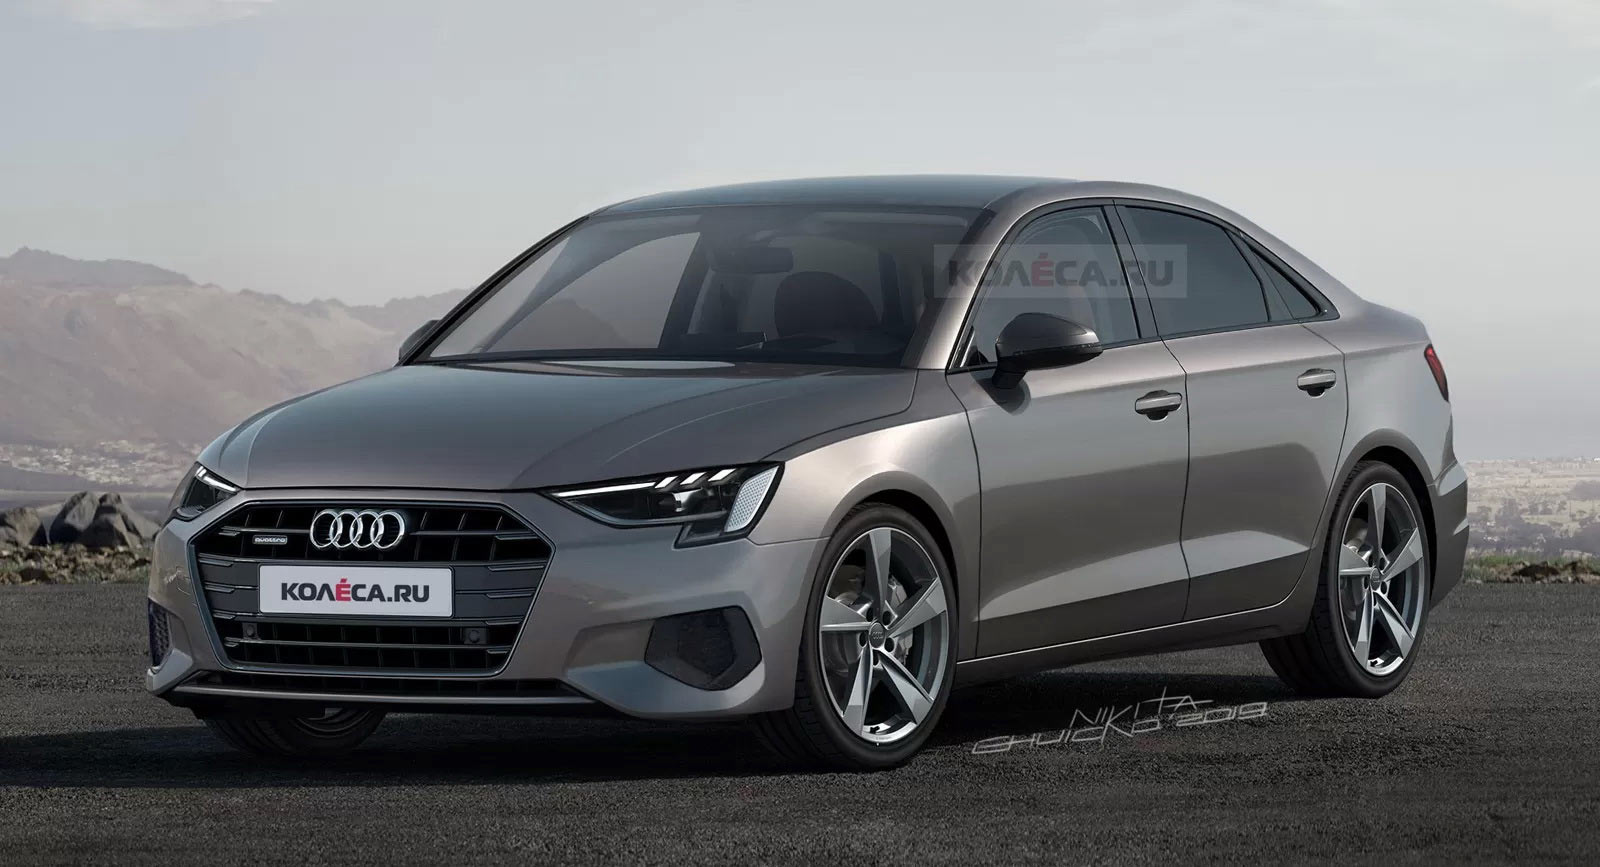 2020 Audi A3: Here's A Pretty Accurate Look At The Sedan ...